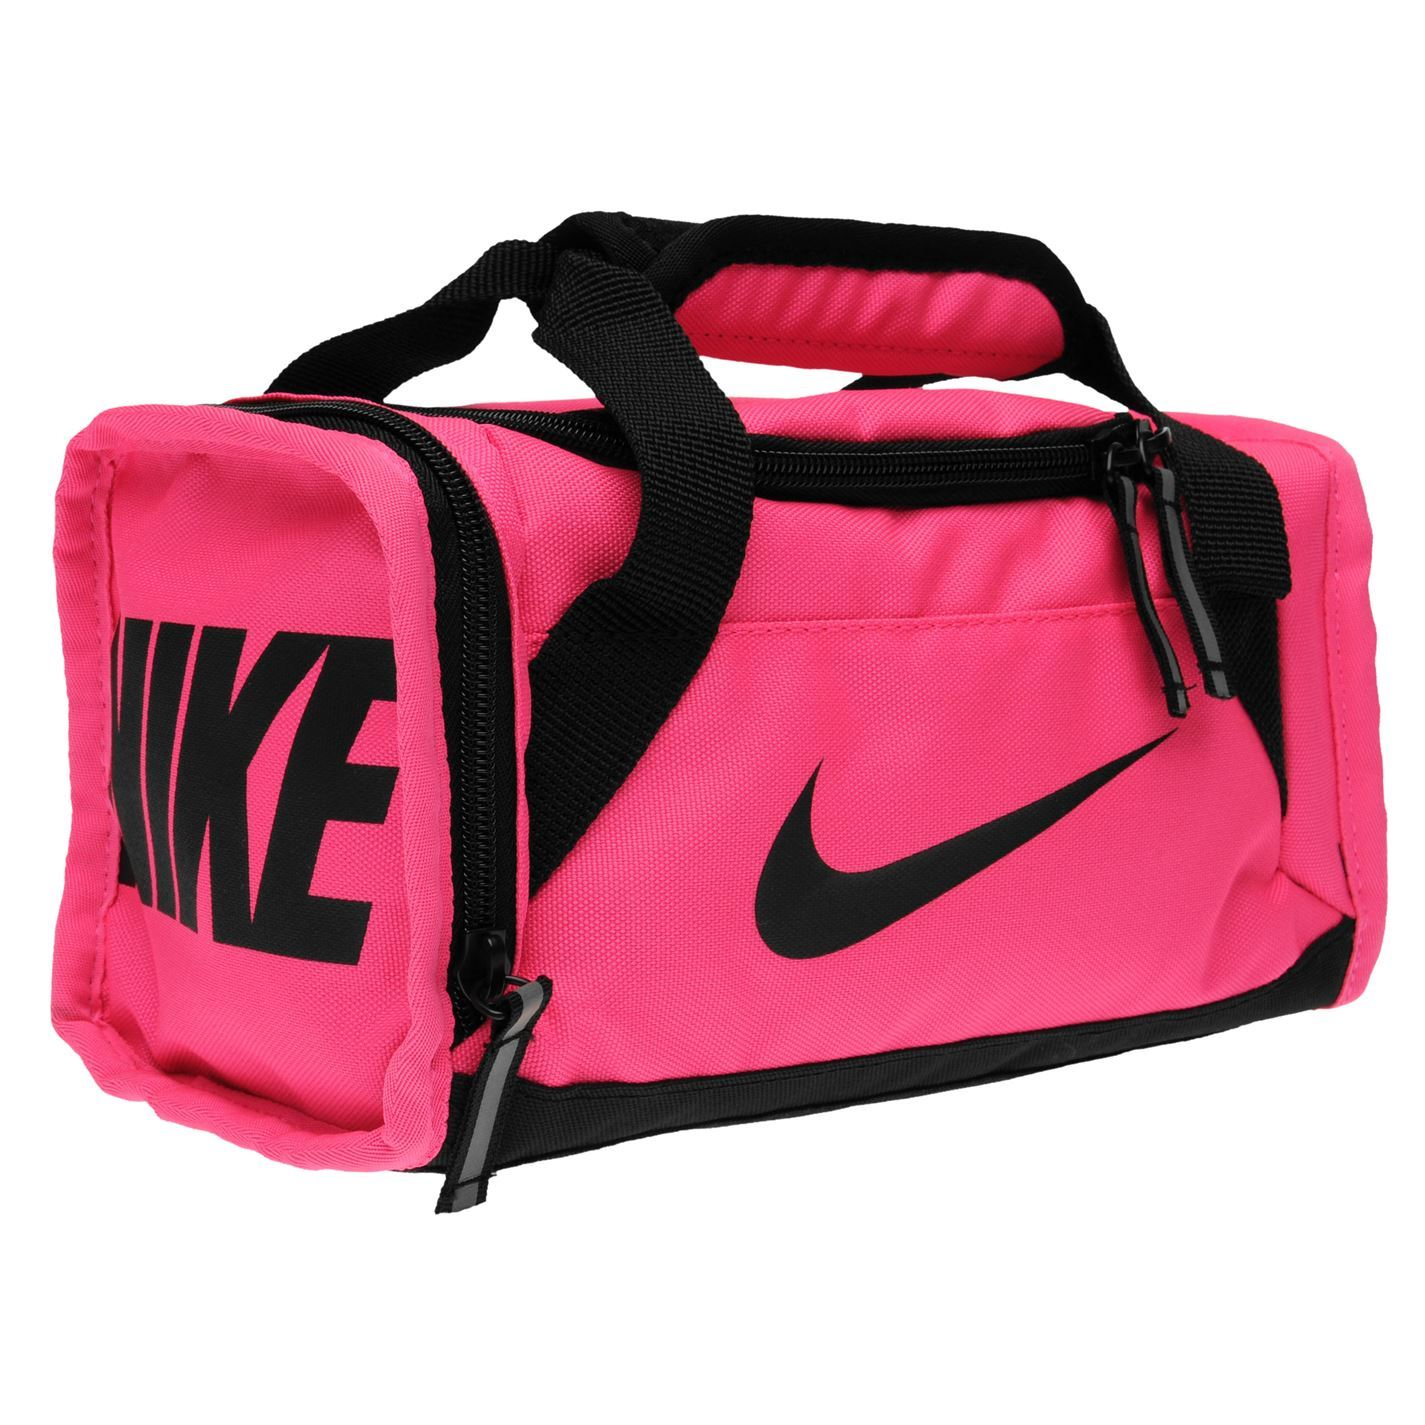 nike brasilia lunch bag pink sports gymbag kitbag ebay. Black Bedroom Furniture Sets. Home Design Ideas